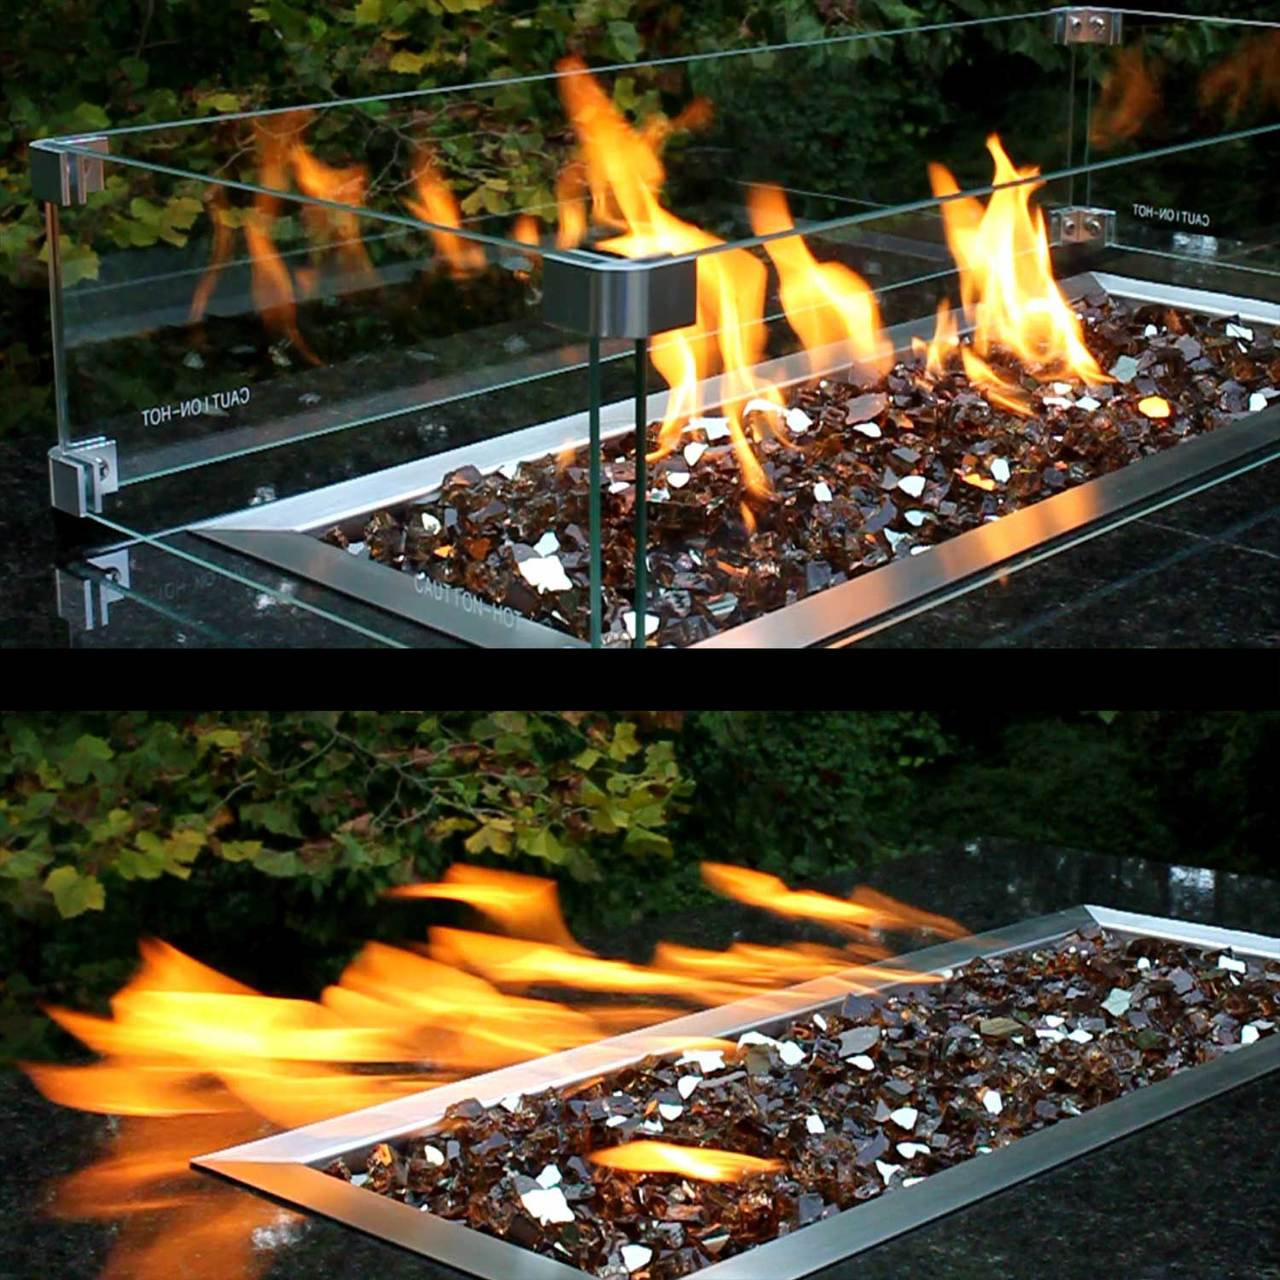 Fire Pit Flame Guard For 18 X 18 Burner Pan